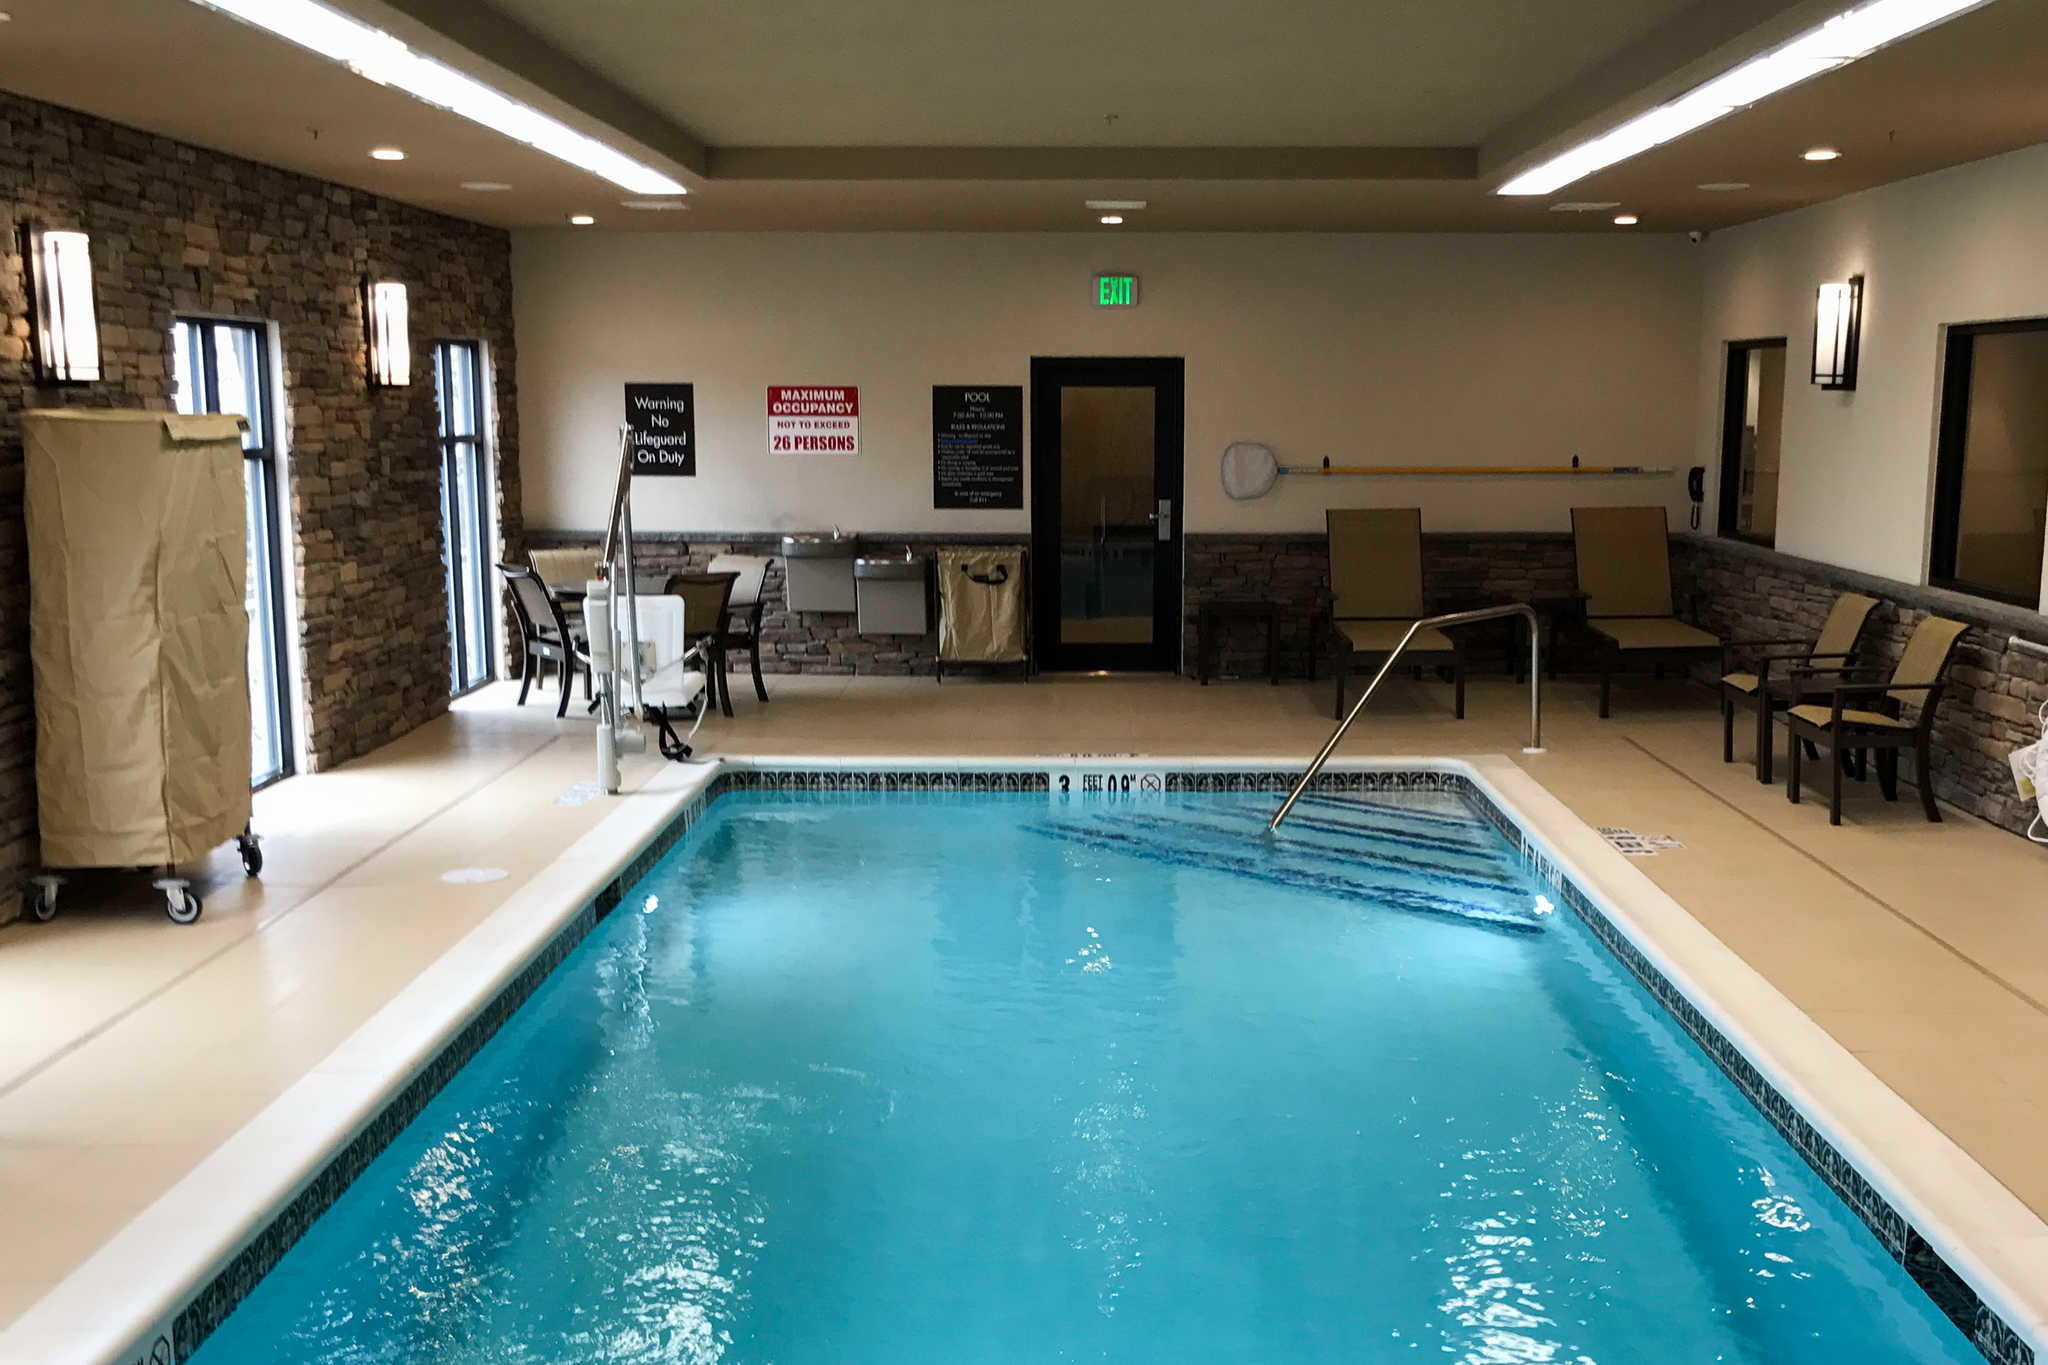 Hotels In Middletown Ny With Indoor Pool